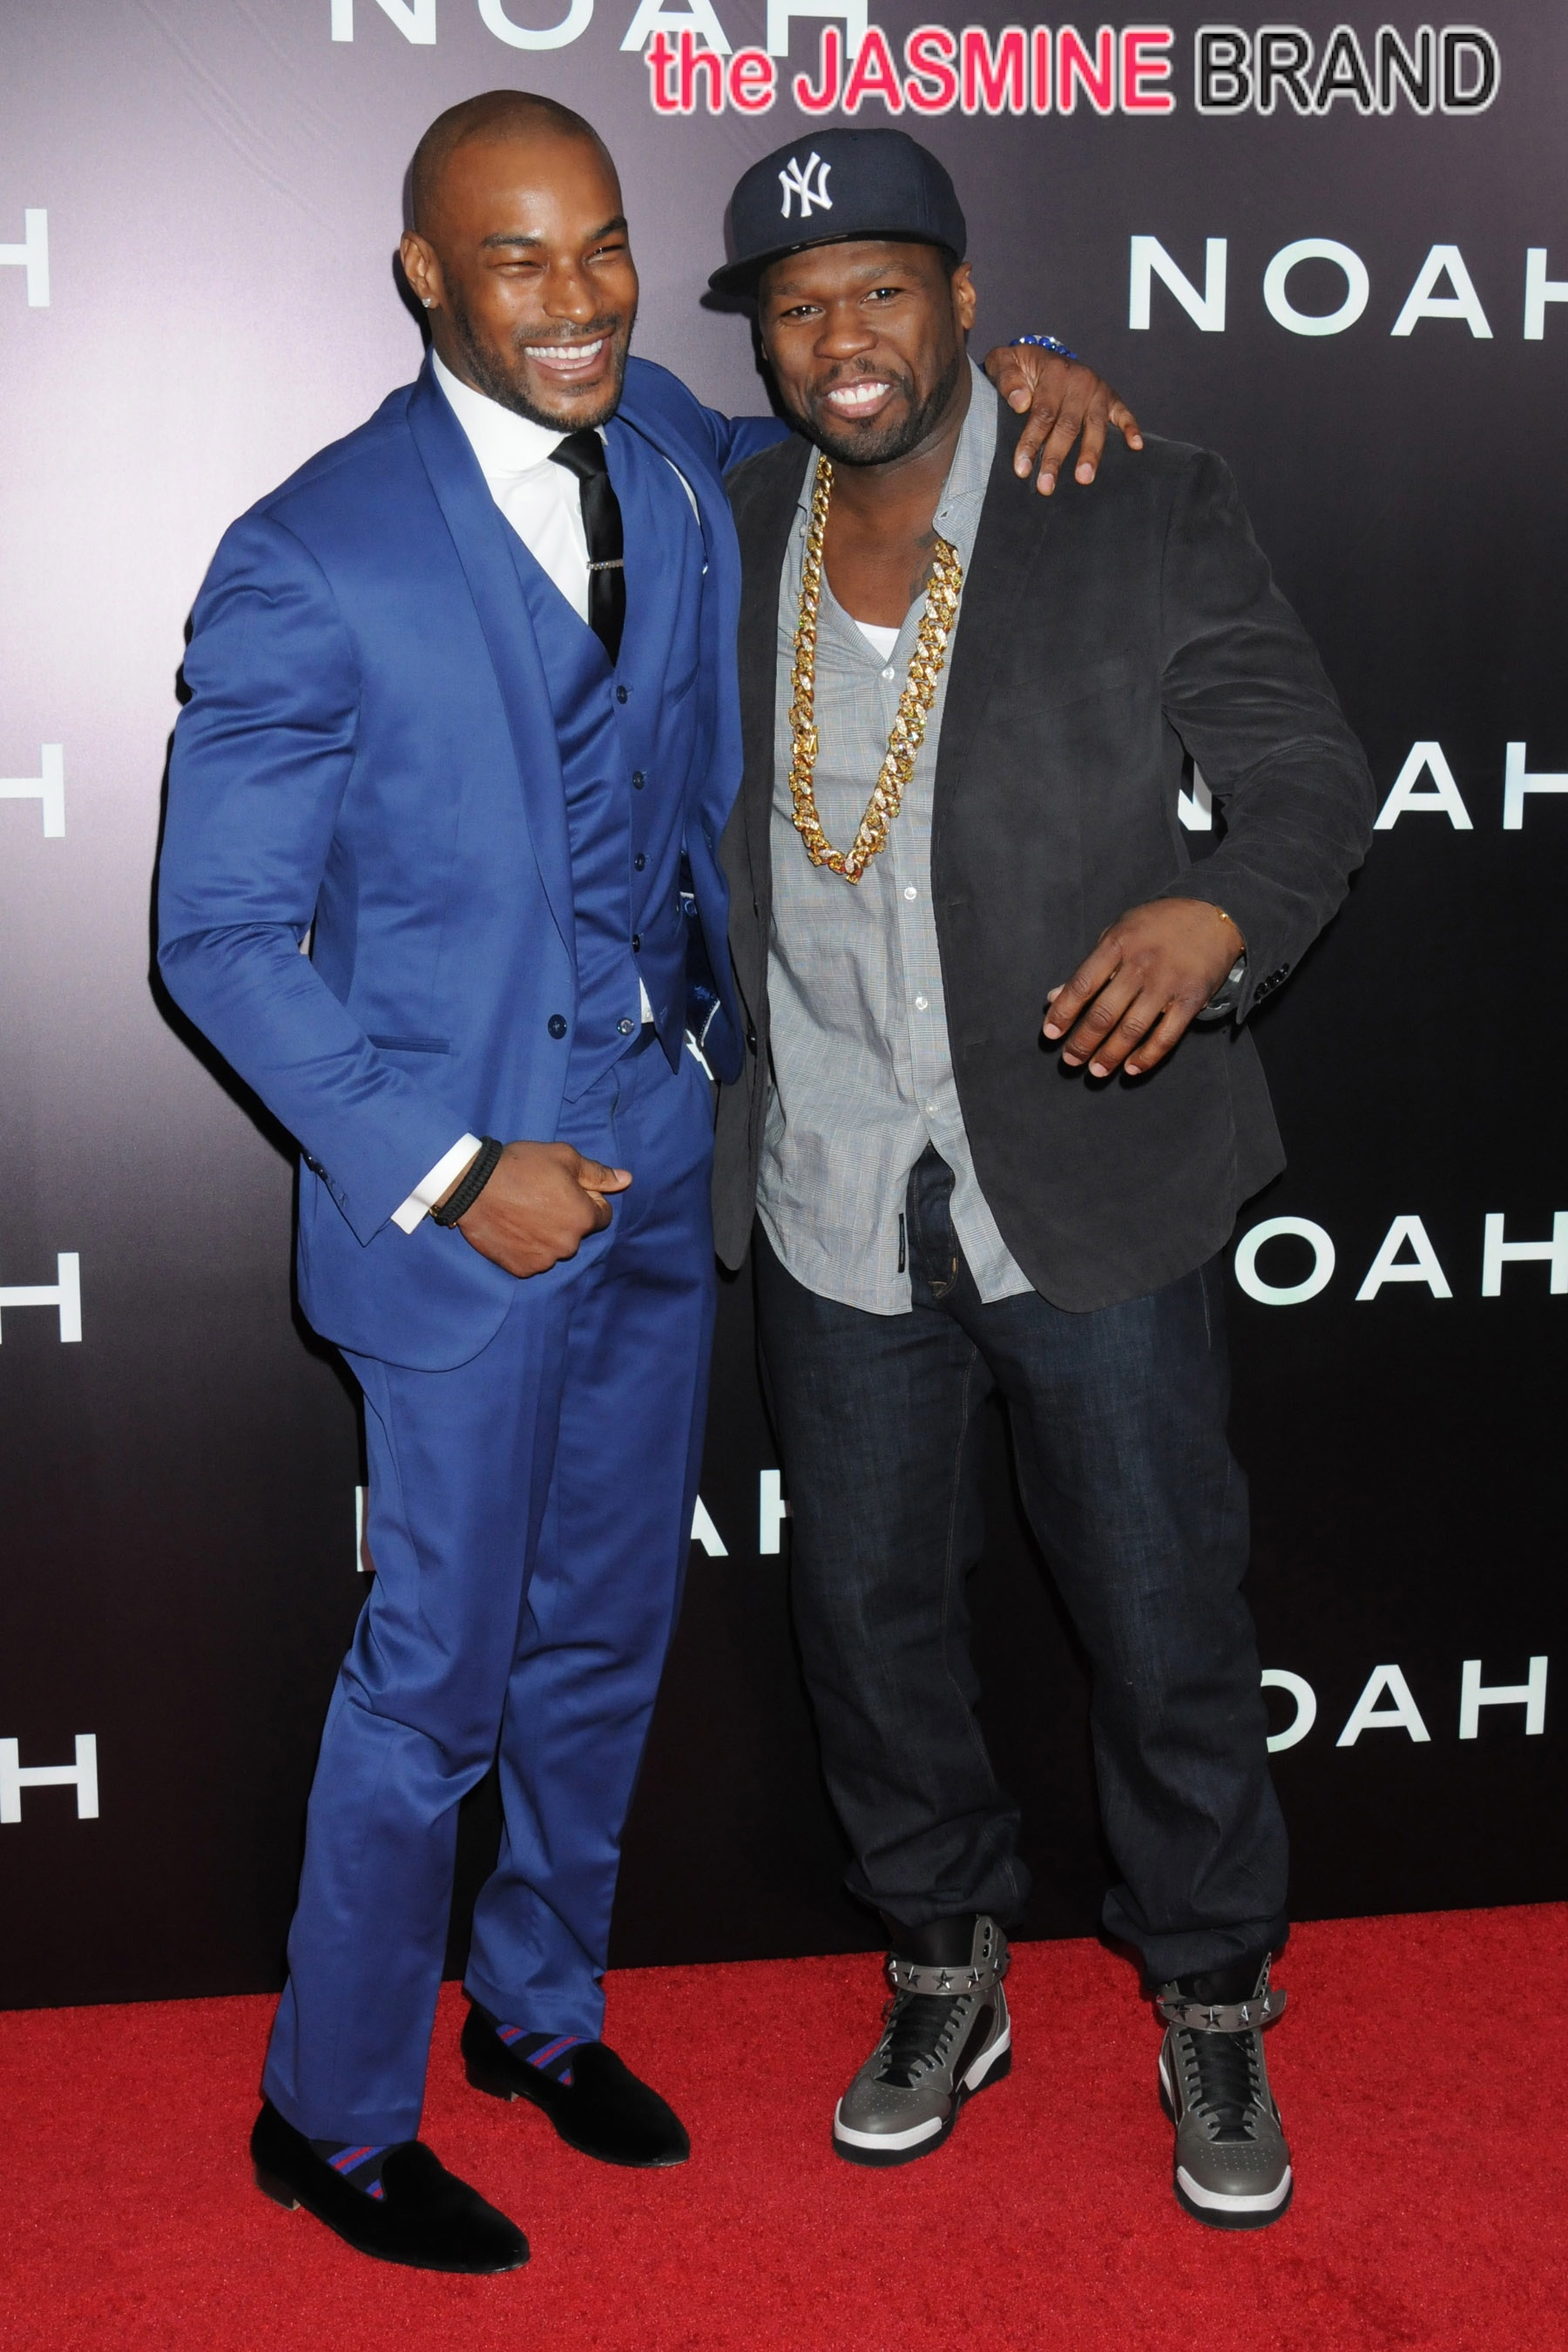 Arrivals at the Premiere of 'Noah' in NYC